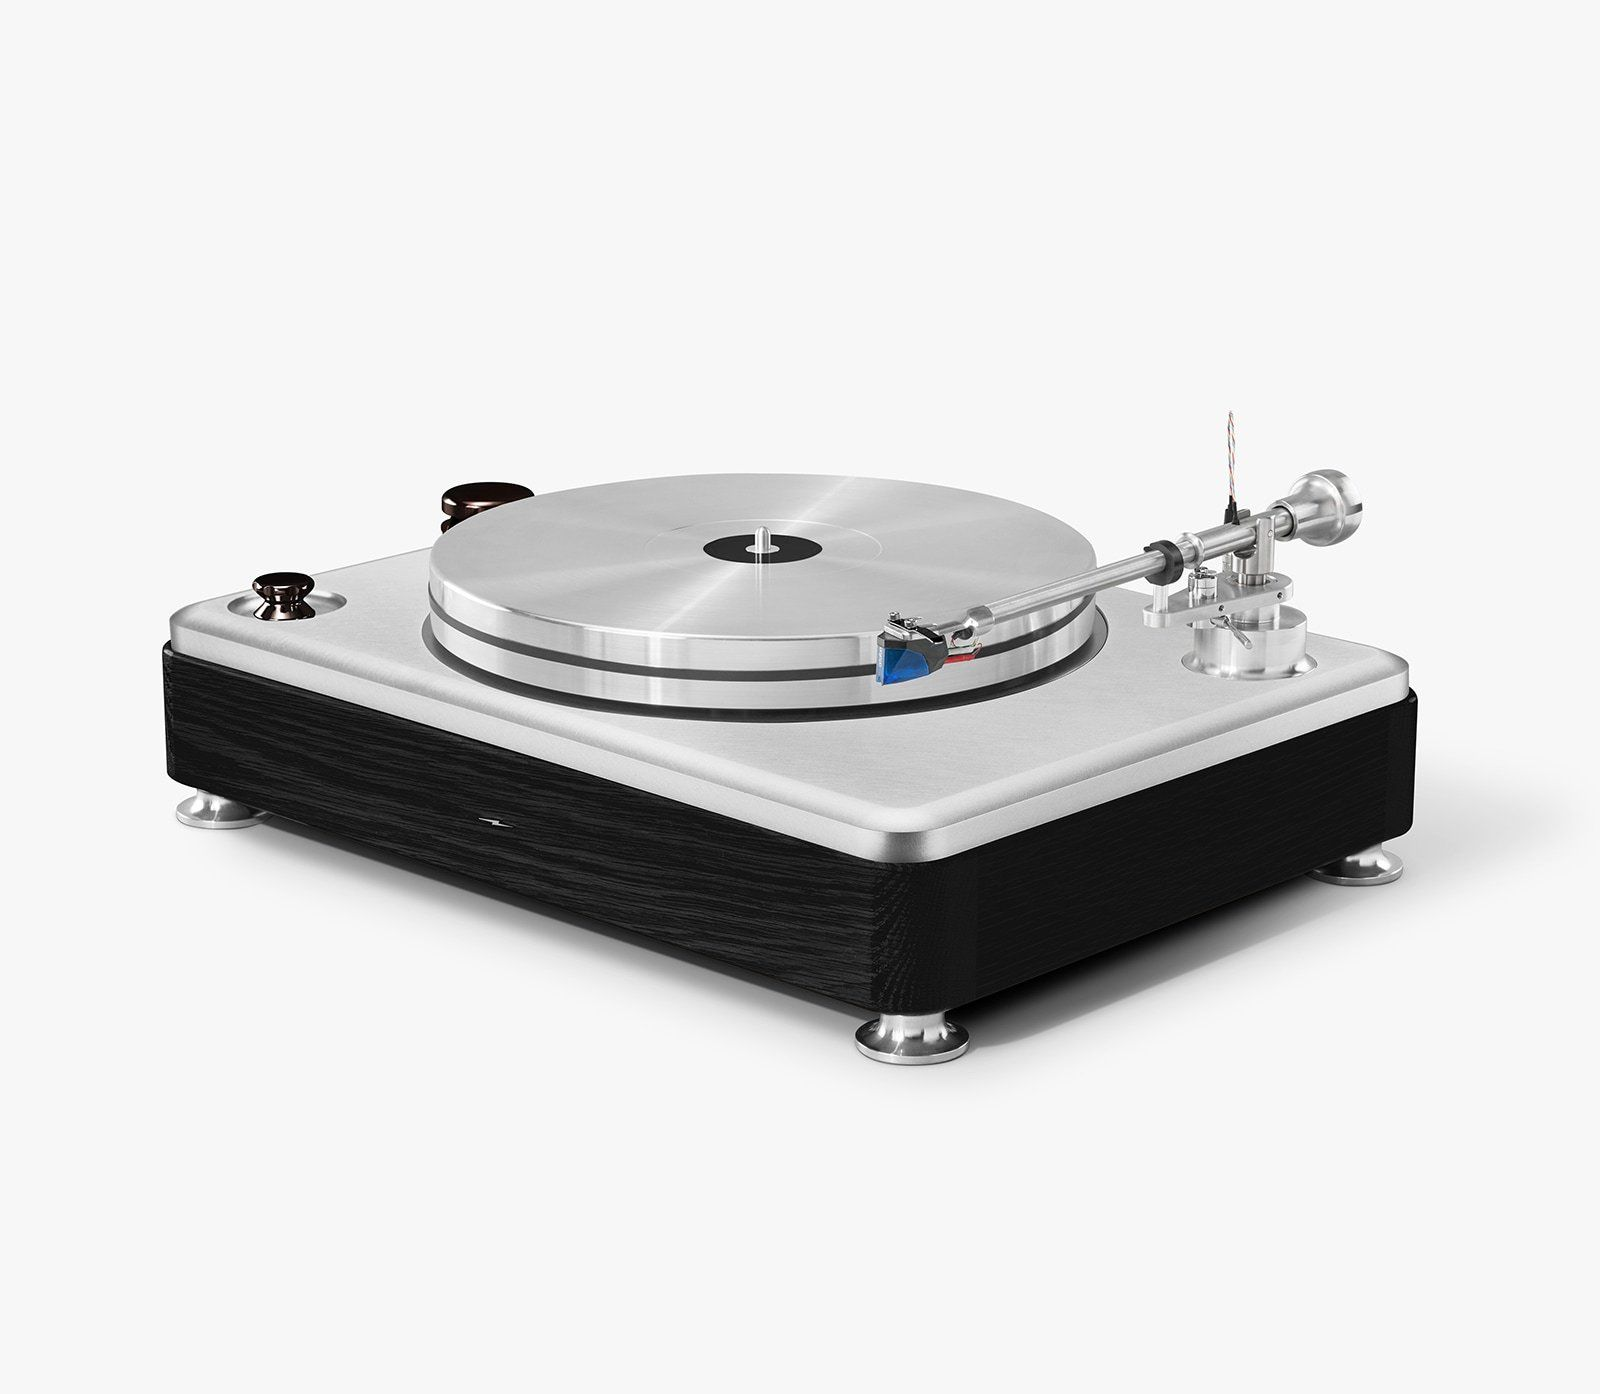 Delicieux Record Store Day, Turntable, Record Player, Vinyl